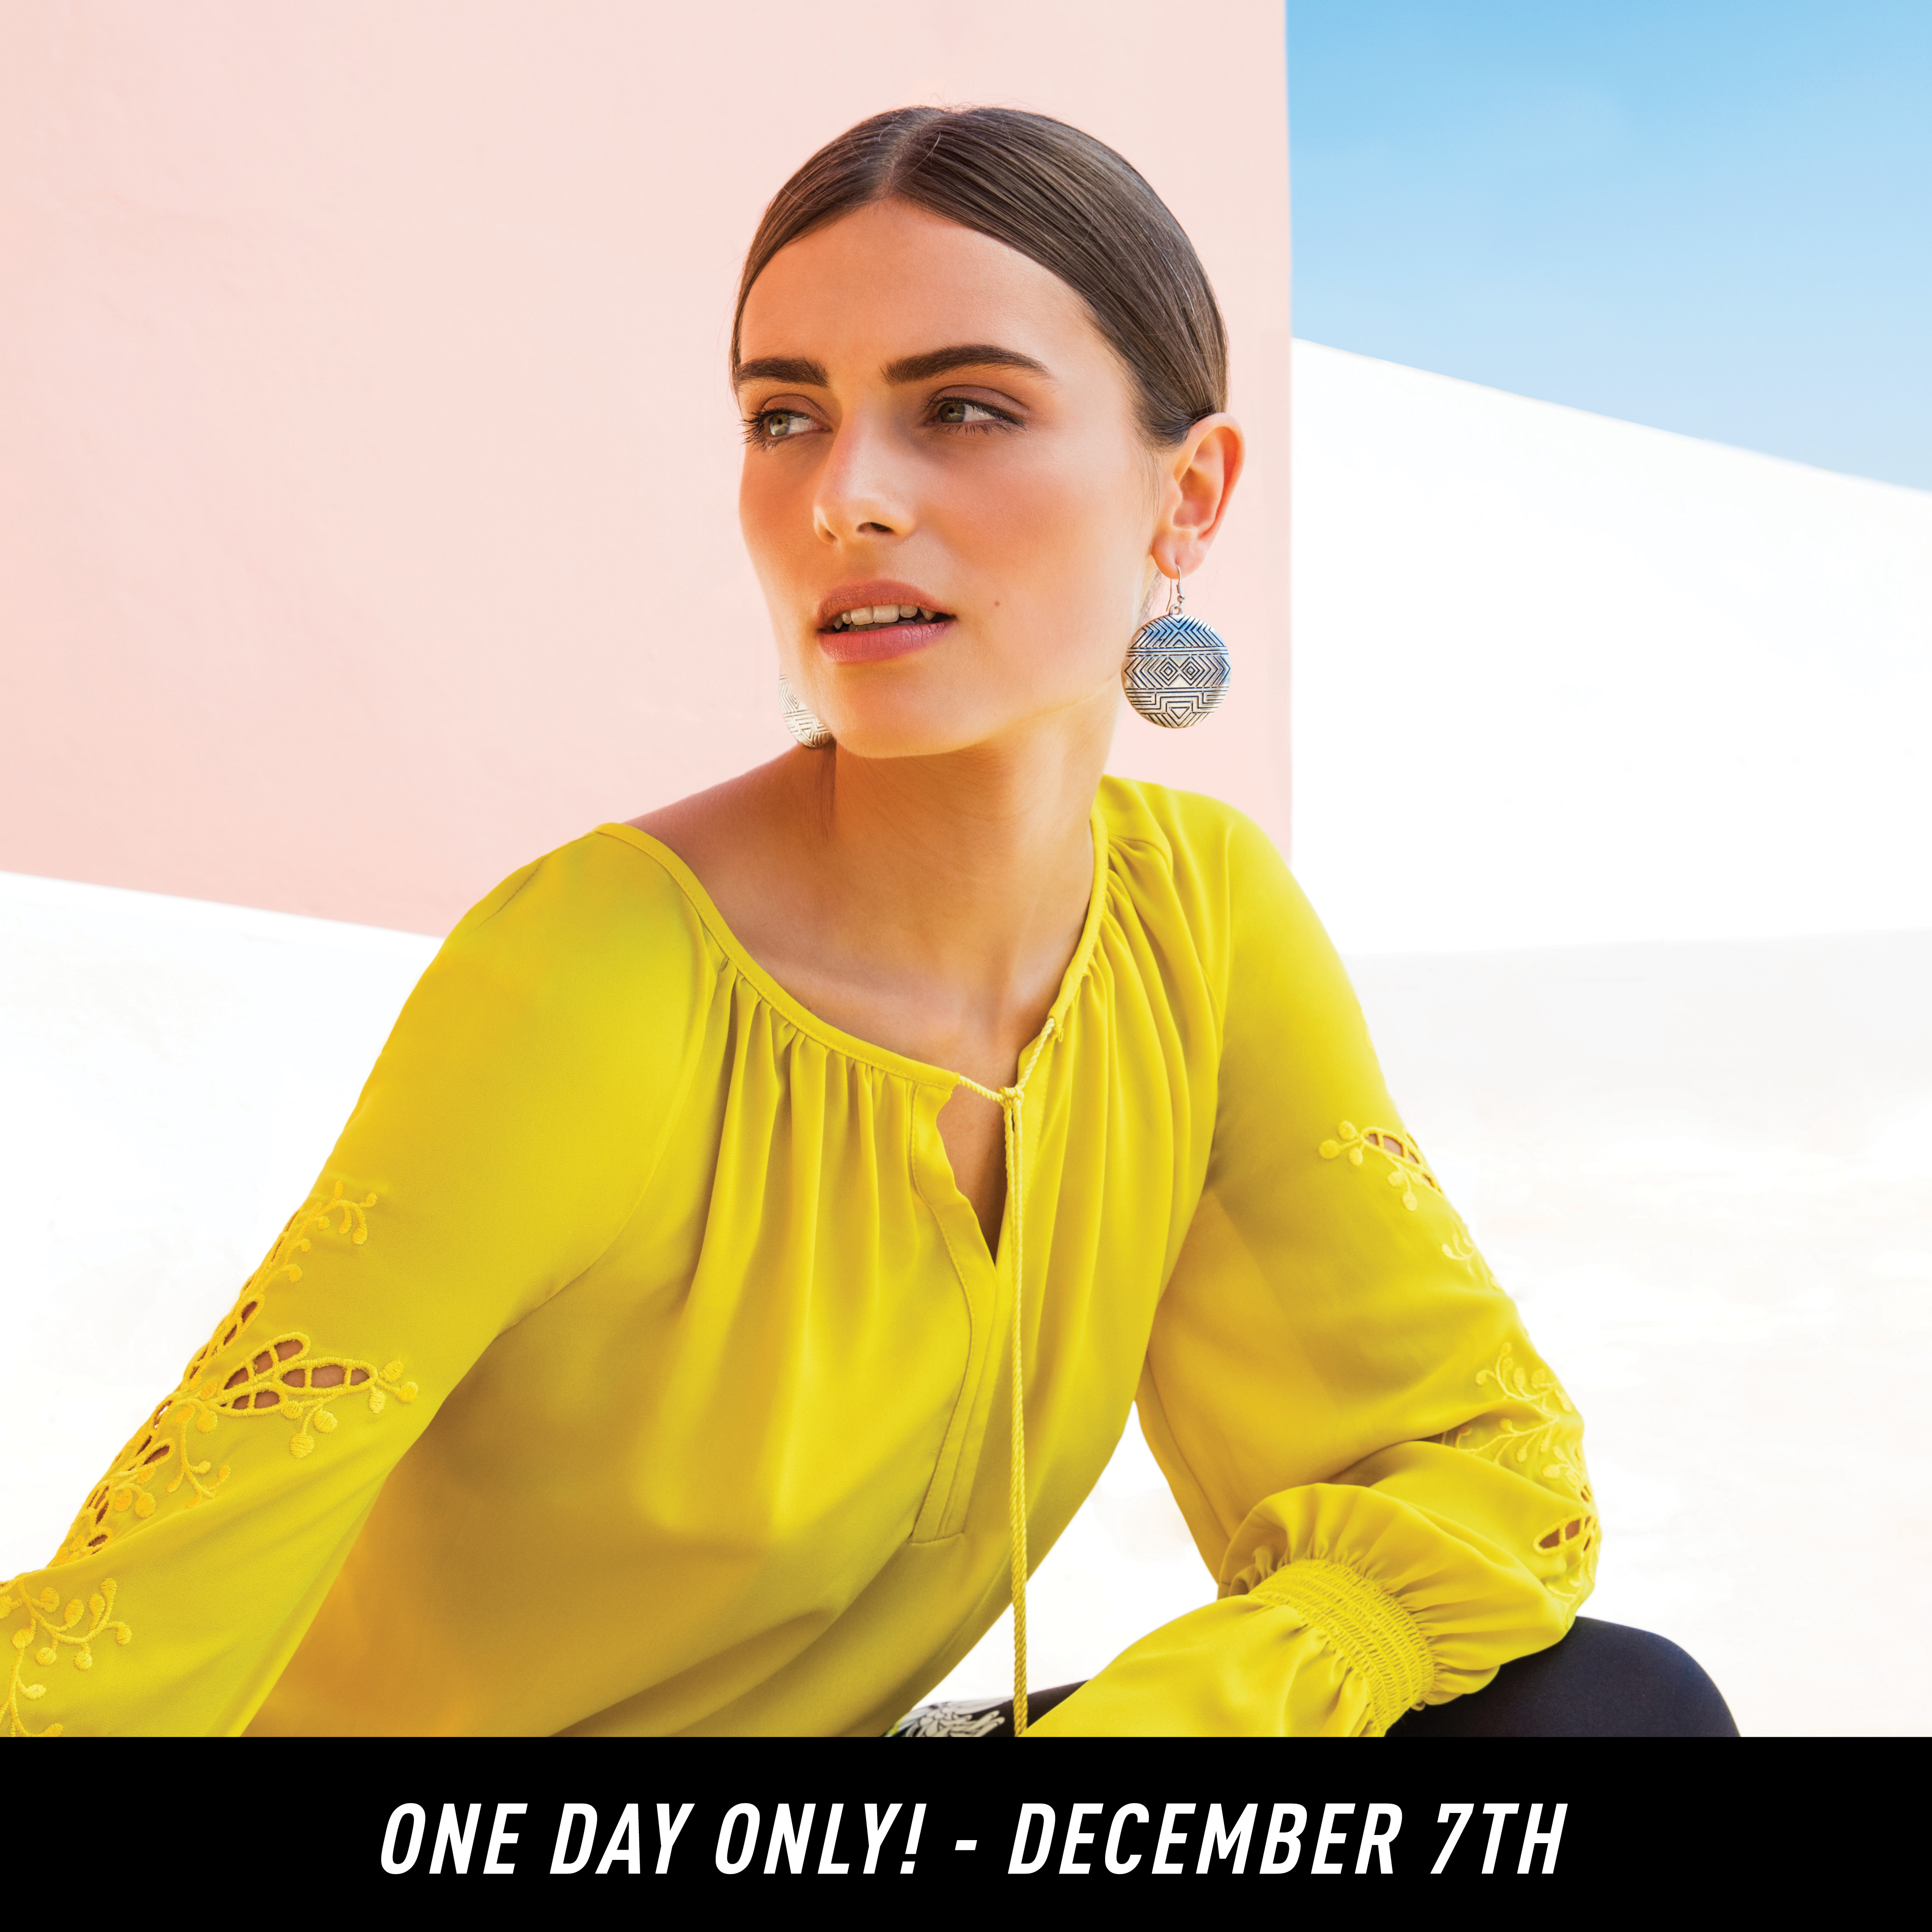 One Day Show – December 7th ONLY!